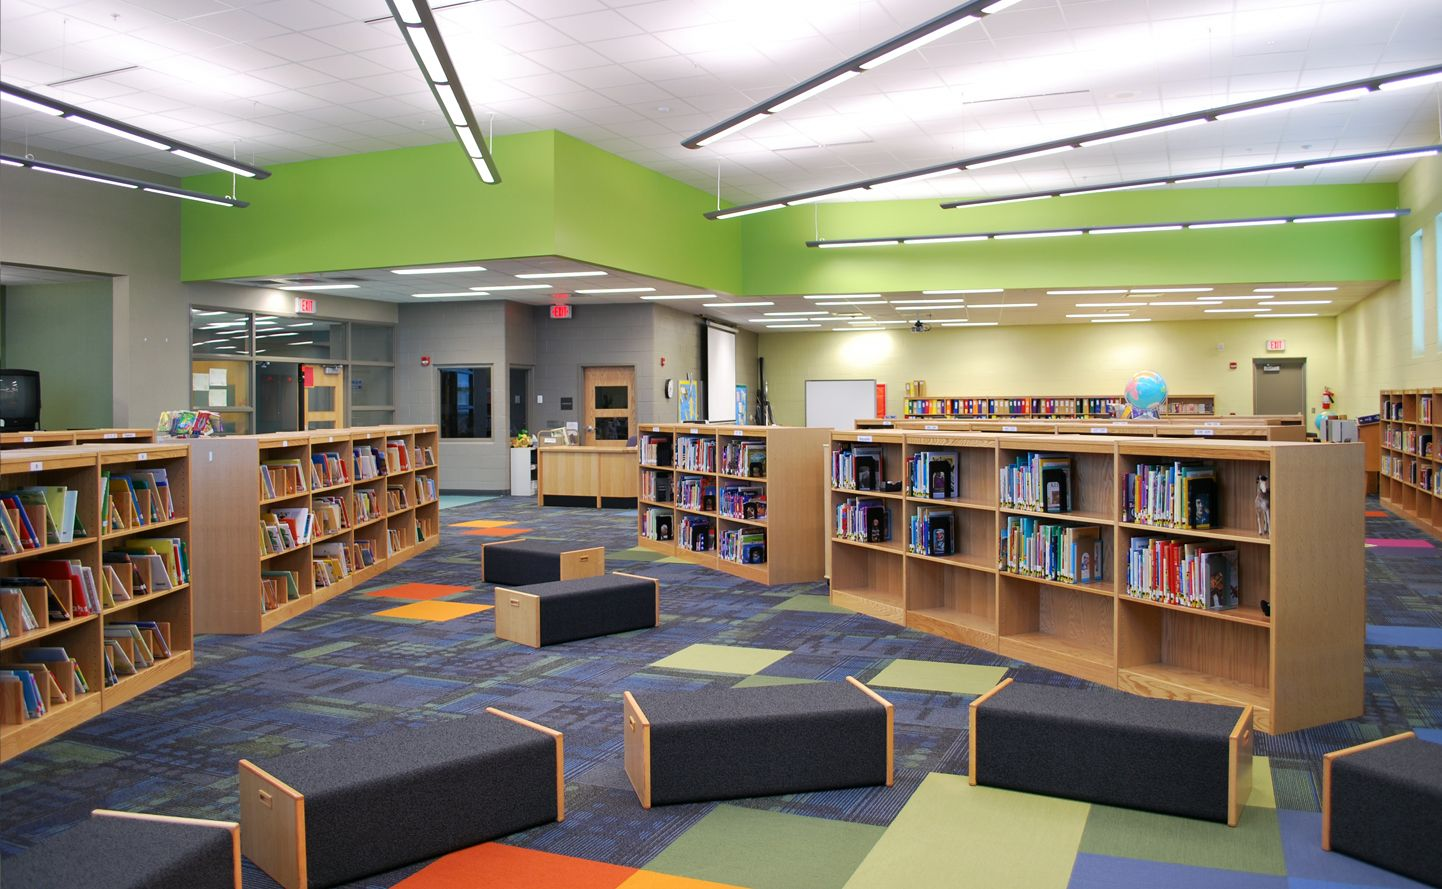 Lincoln elementary performing arts school interiors - How long is interior design school ...